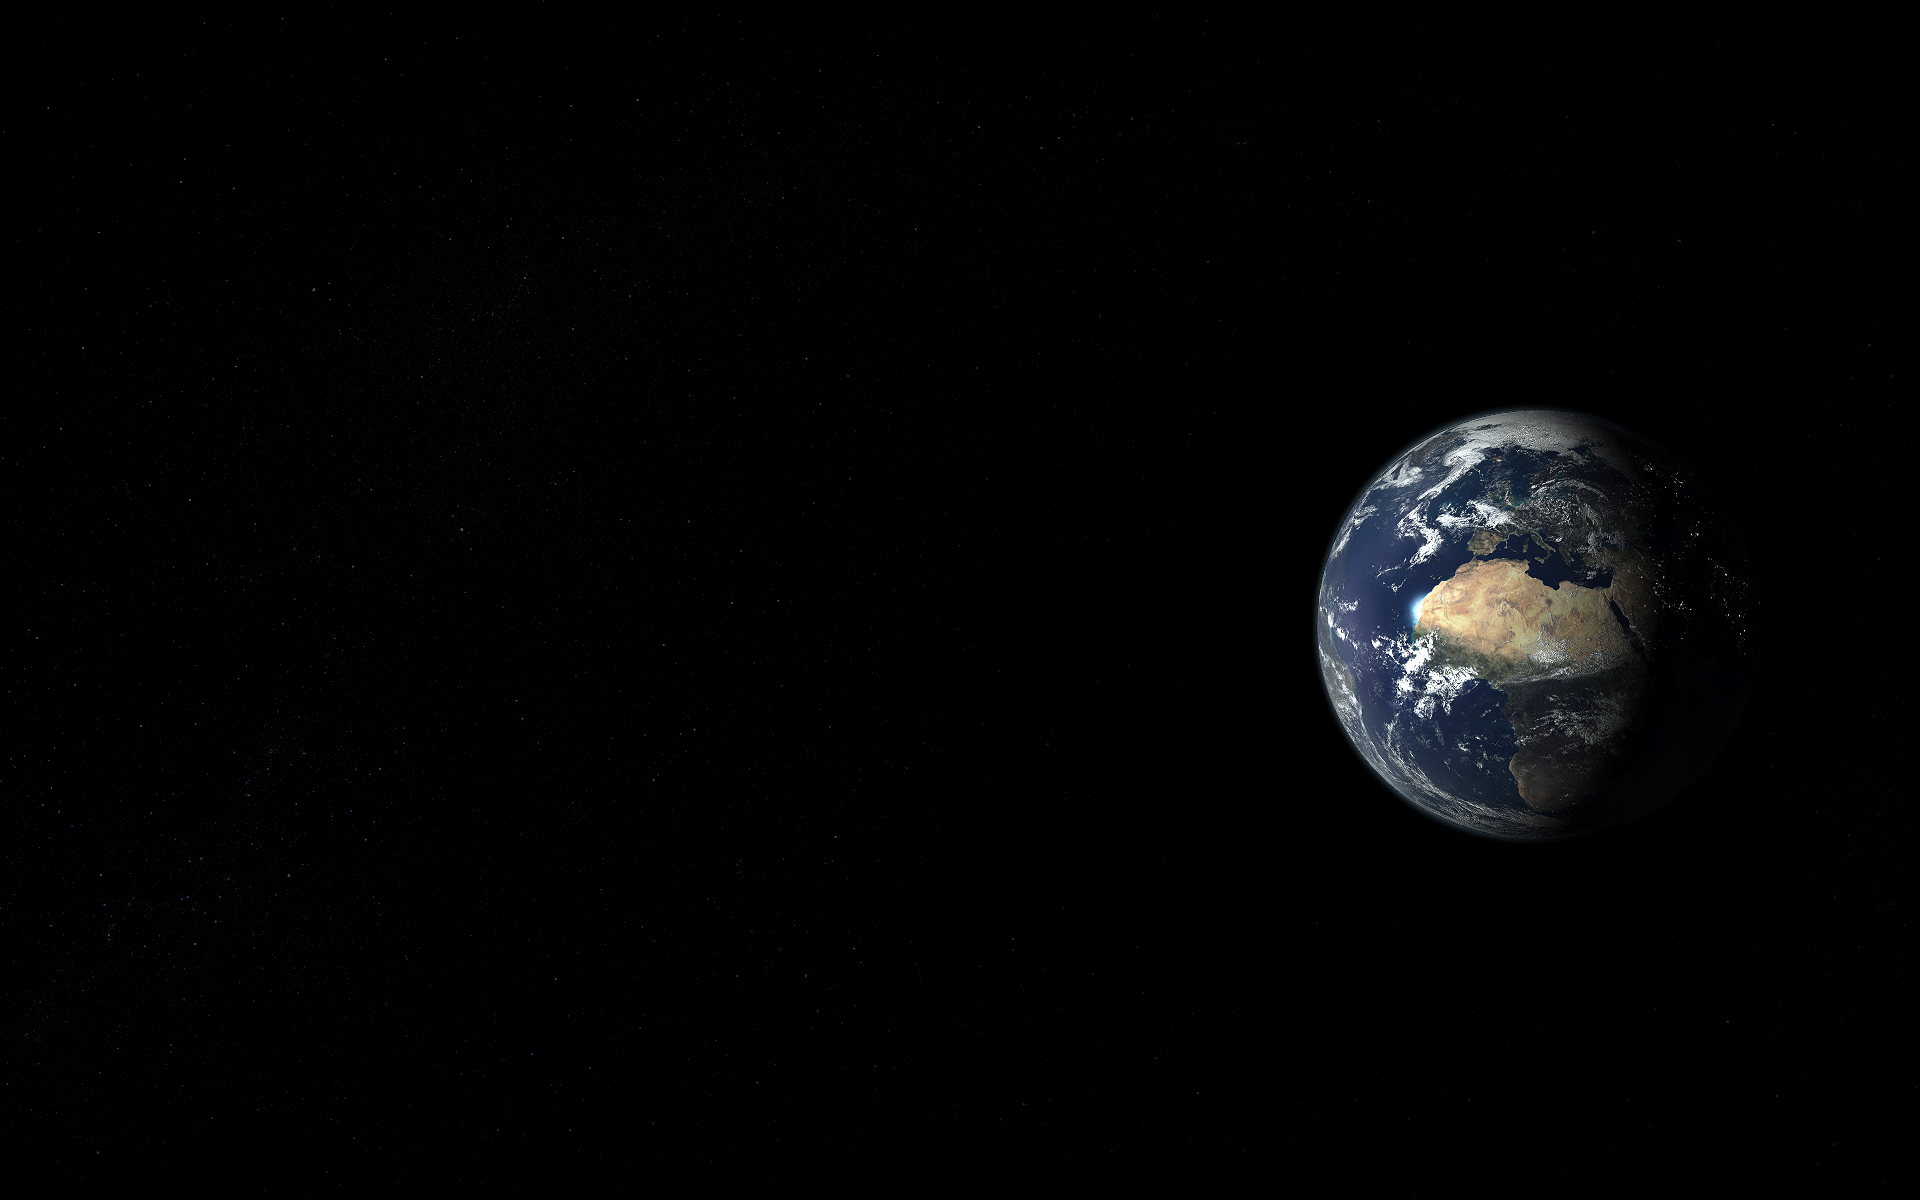 From space hd wallpaper background image 1920x1200 - Earth hd images from space ...